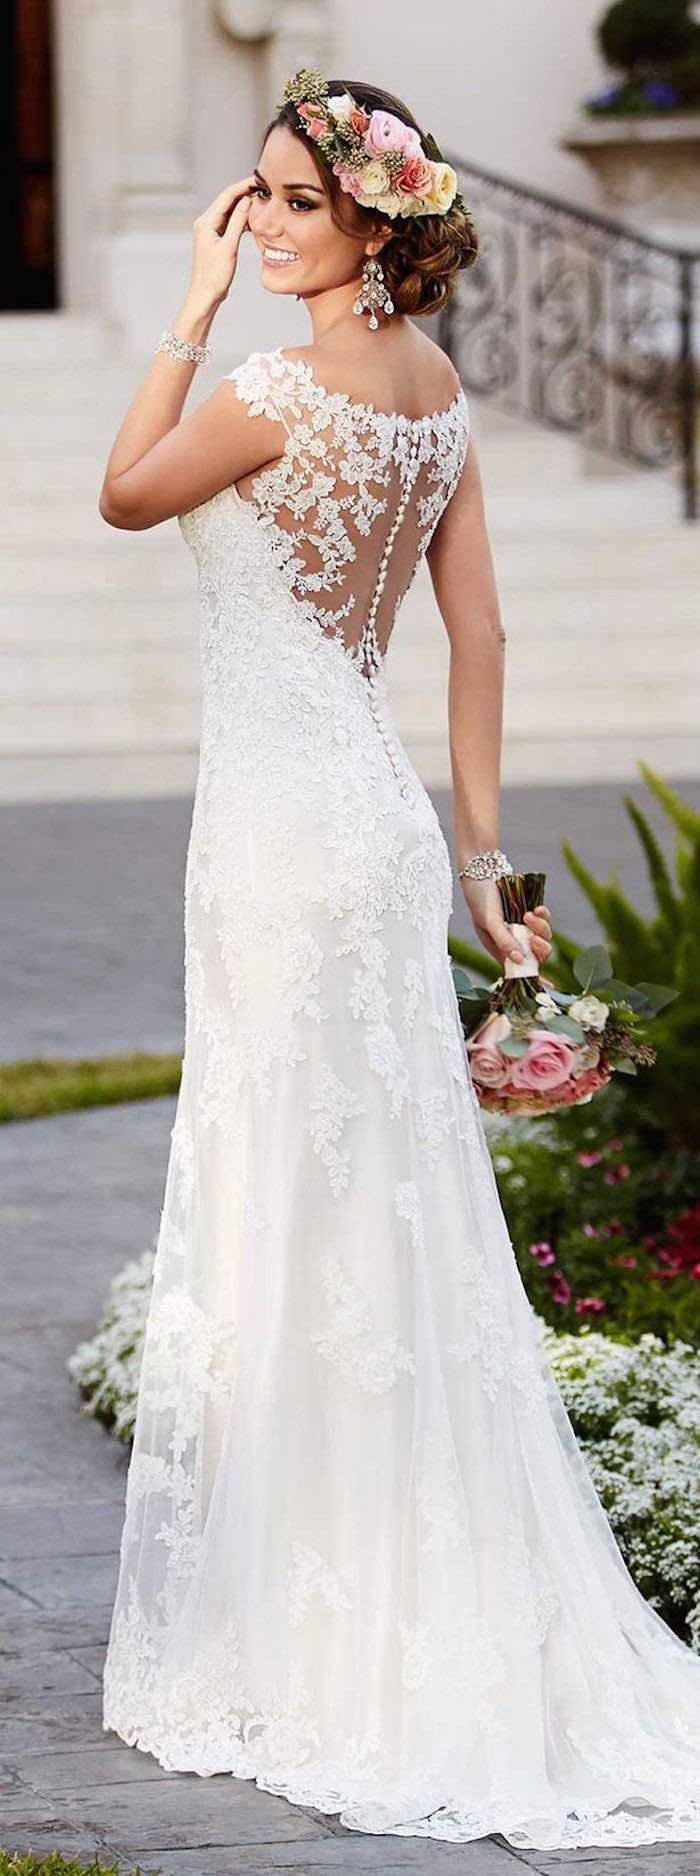 Best 25  Floral wedding dresses ideas only on Pinterest ...